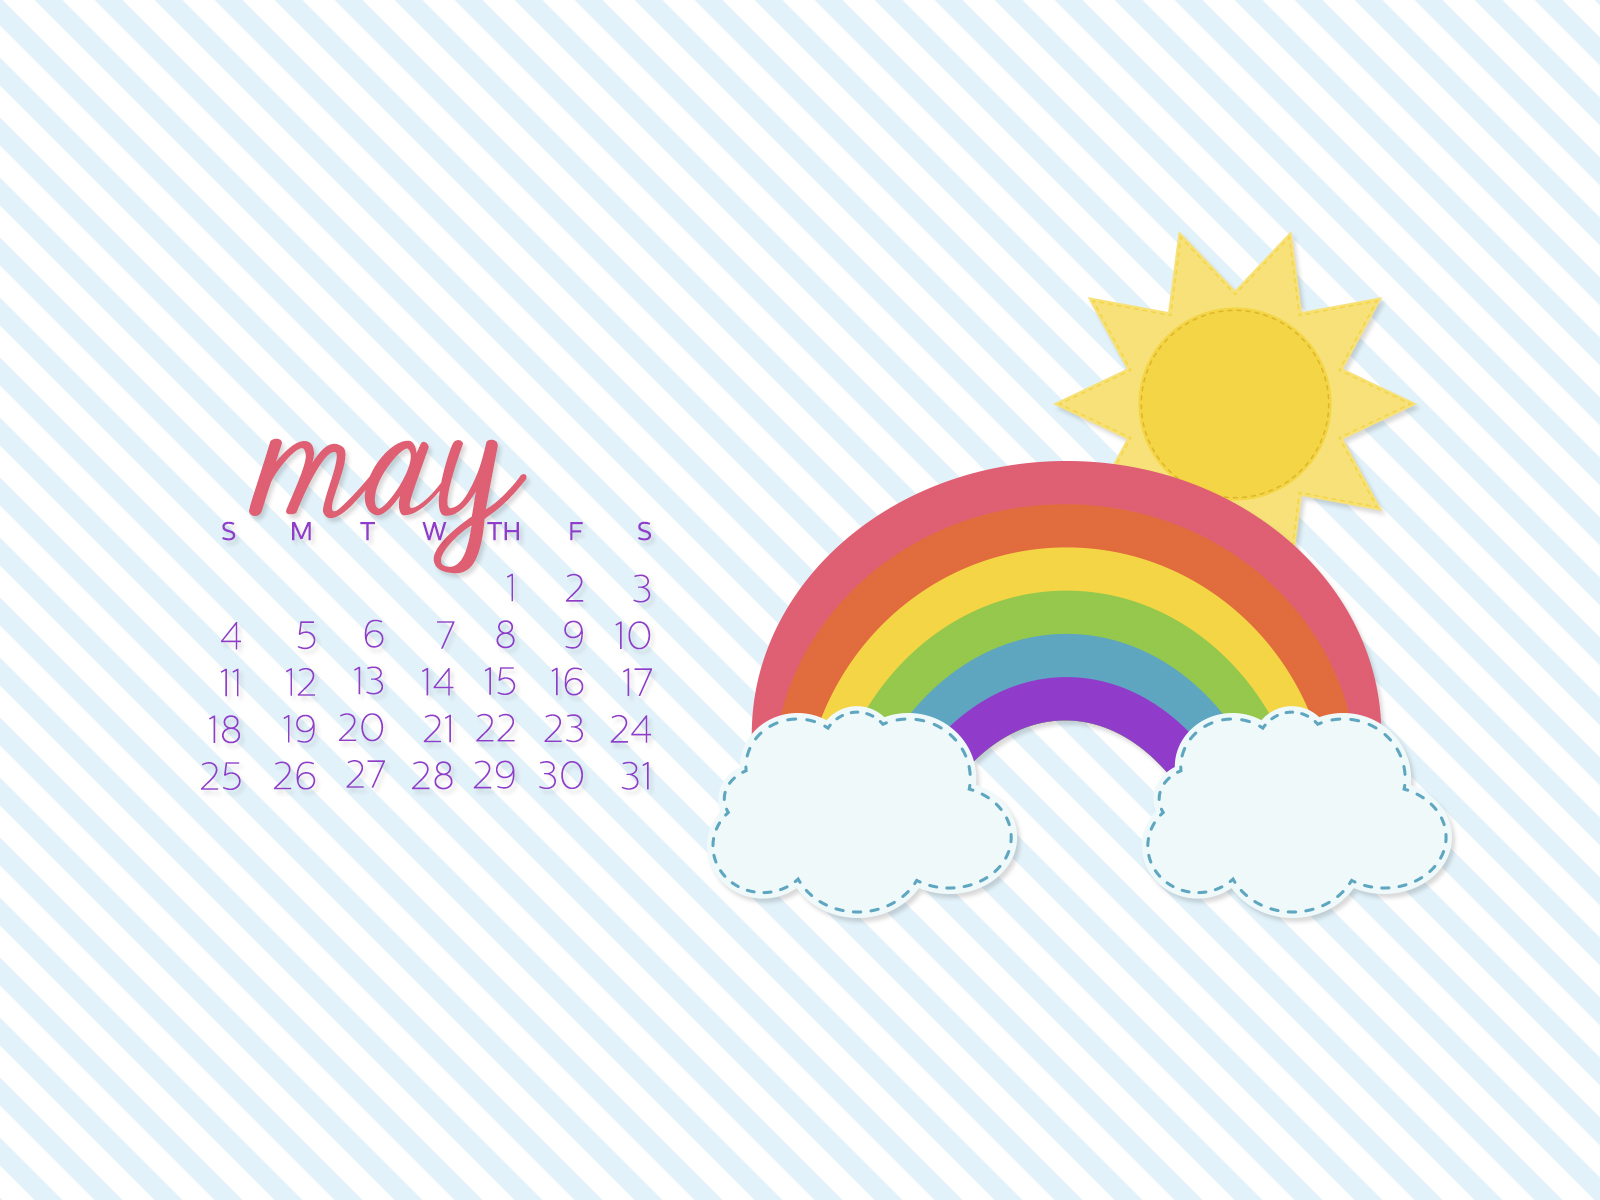 desktop calendar wallpaper simply brenna may 2014